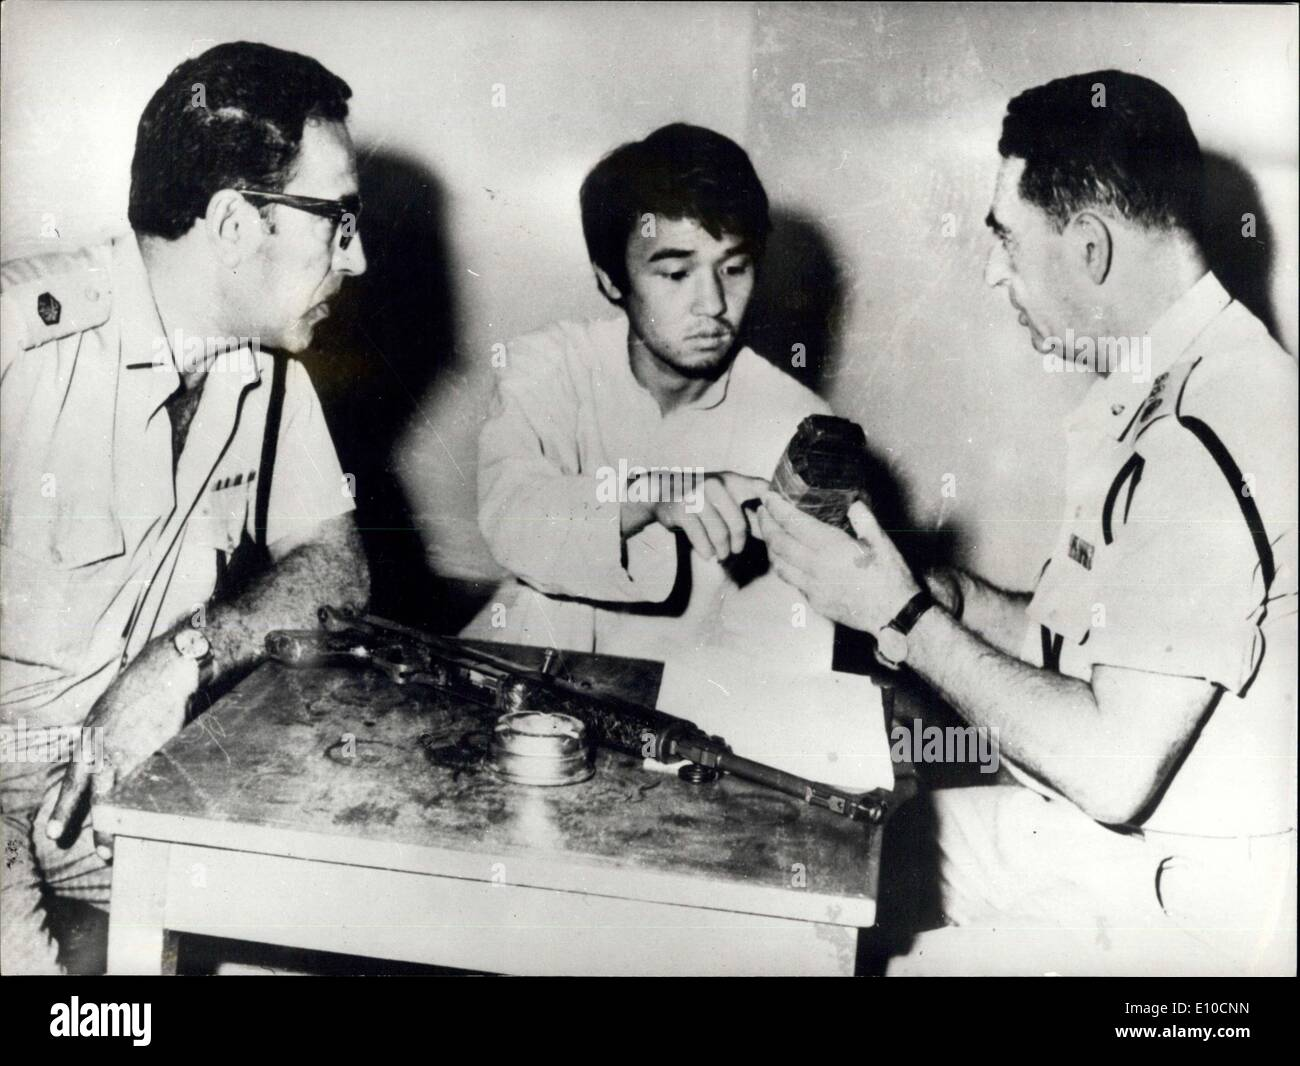 Jun. 19, 1972 - Japanese Survivor of the Three-Man Suicide Squad in the Tel Aviv Airport Massacre is Interrogated: Photo Shows Kozo Okamoto, 24, sole survivor of the three-man Japanese suicide squad which killed 26 people at Tel Aviv Airport a fortnight ago, being interrogated by Israeli police when it was announced that he is to be tried by ab Israeli military court. Before him are some of the weapons used in the massacre. - Stock Image